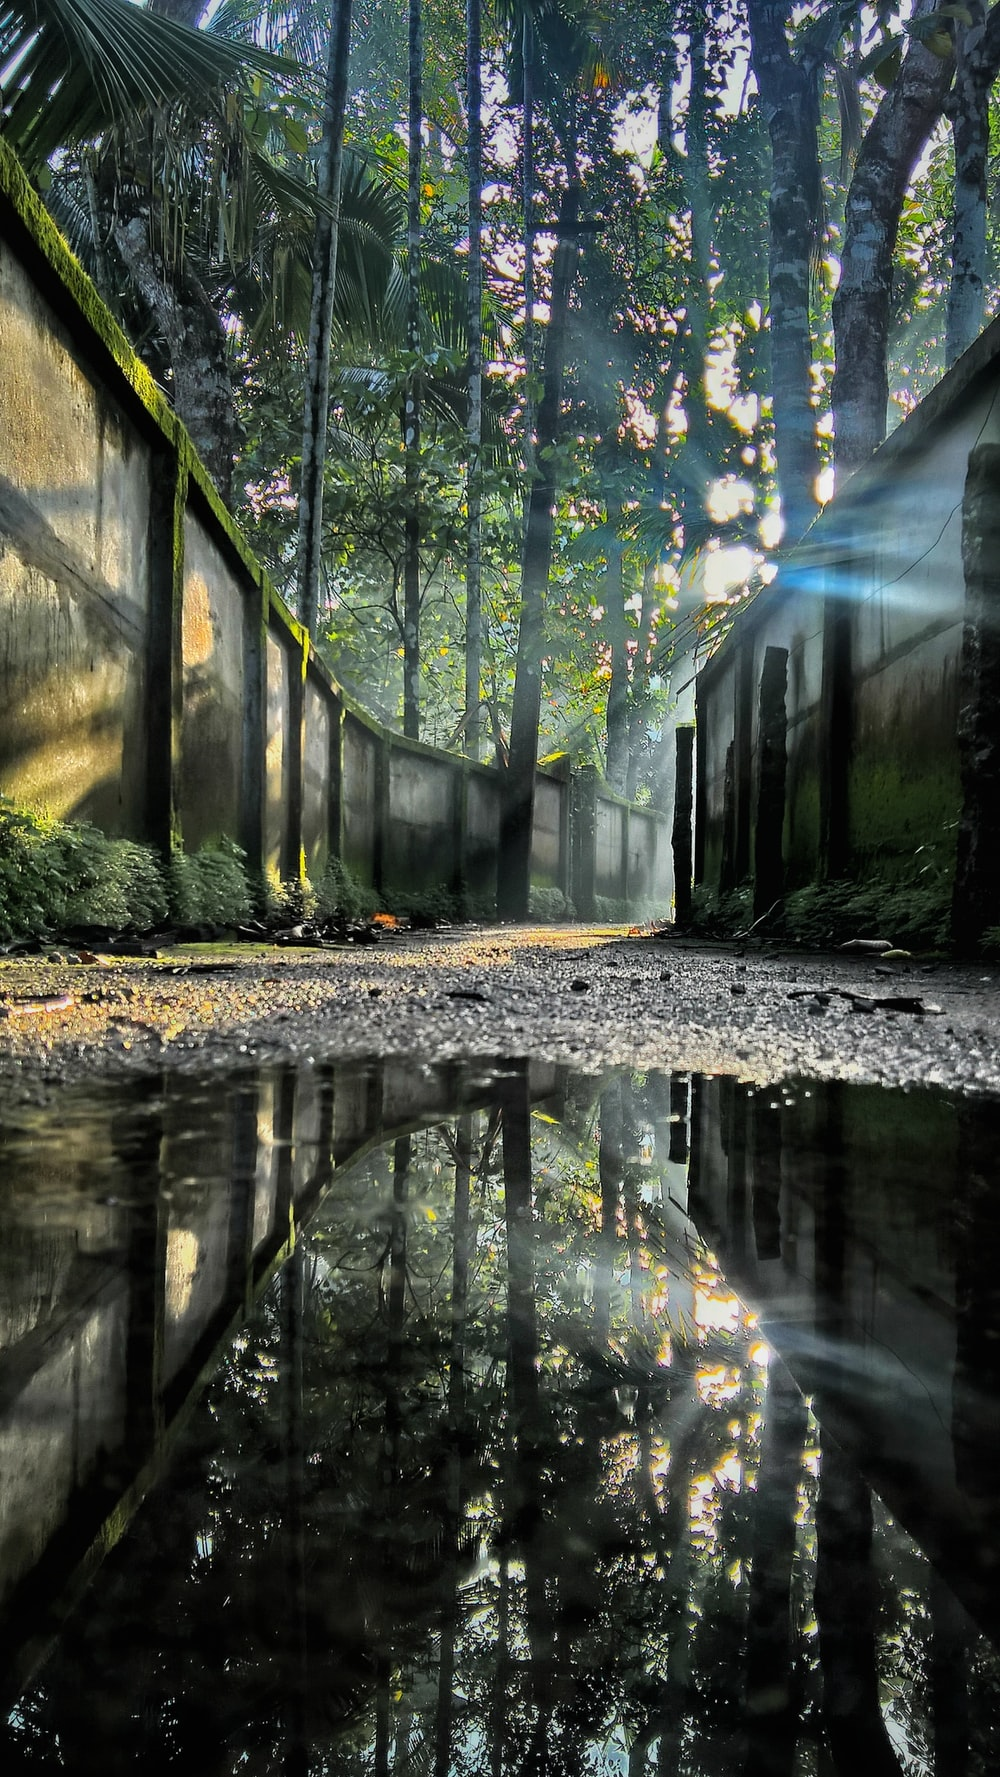 puddle near concrete walls and trees